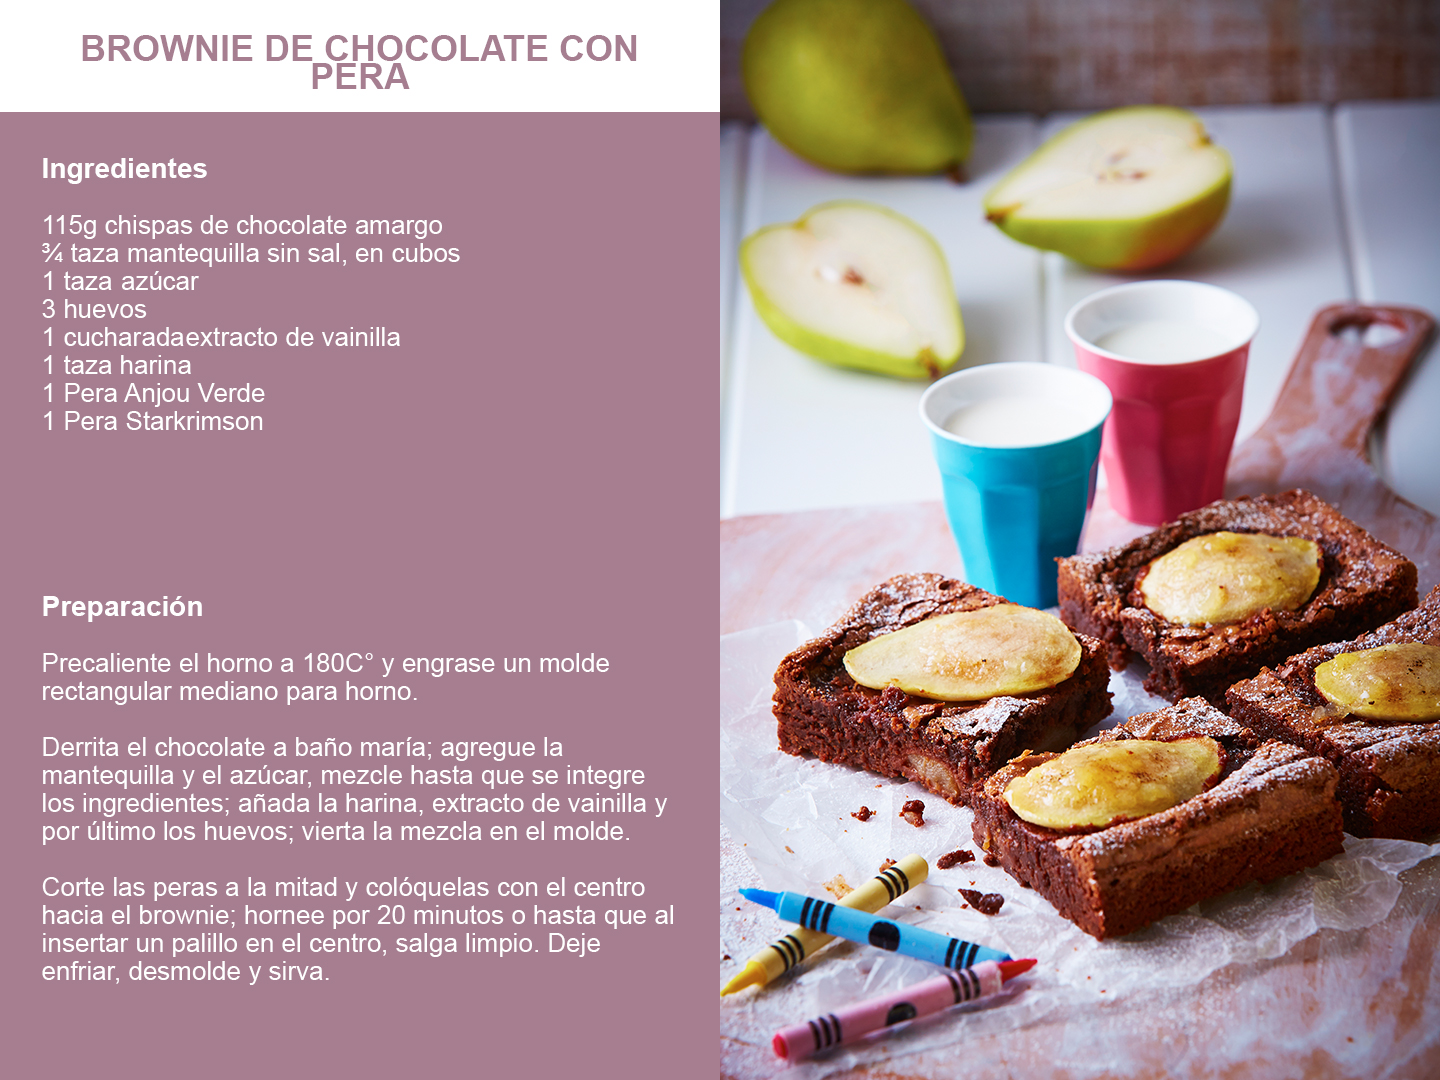 Brownie de chocolate con pera